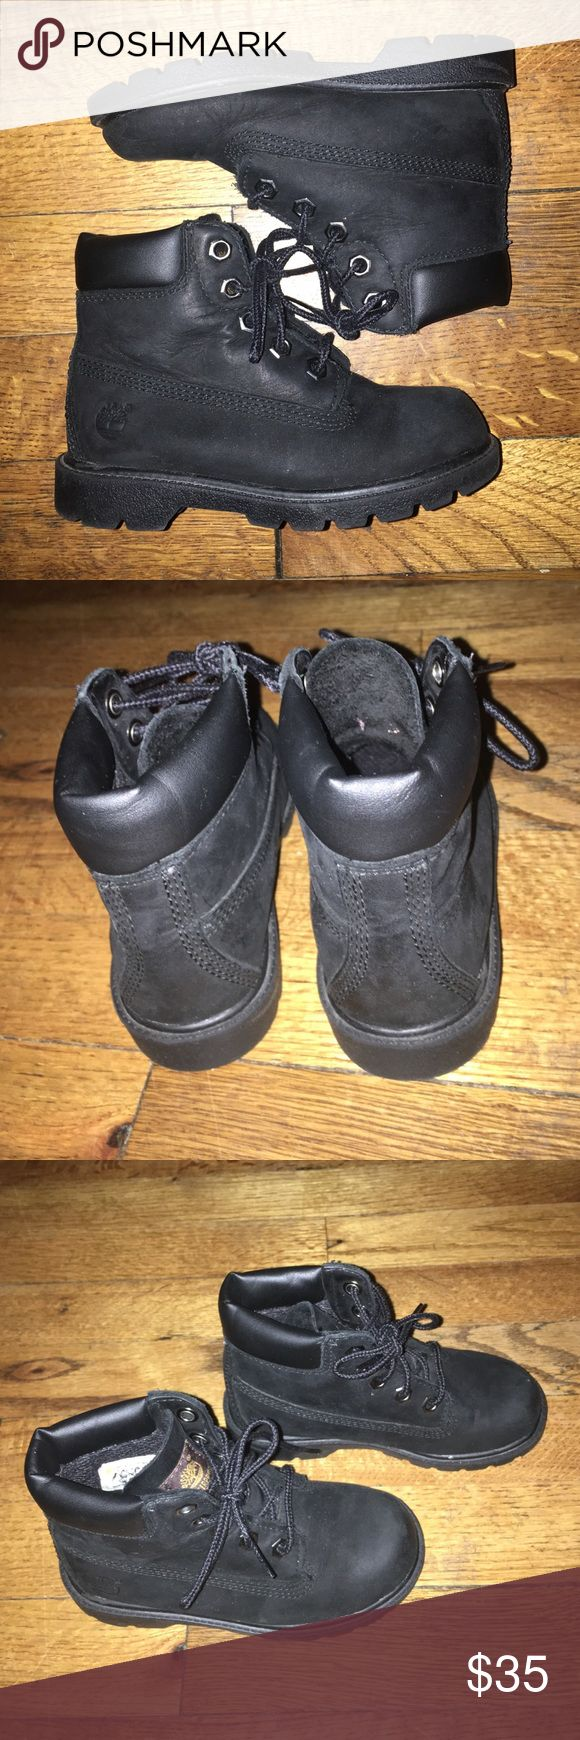 Boys Timberland Boots Boys Timberland Boots in great condition Timberland Shoes Boots